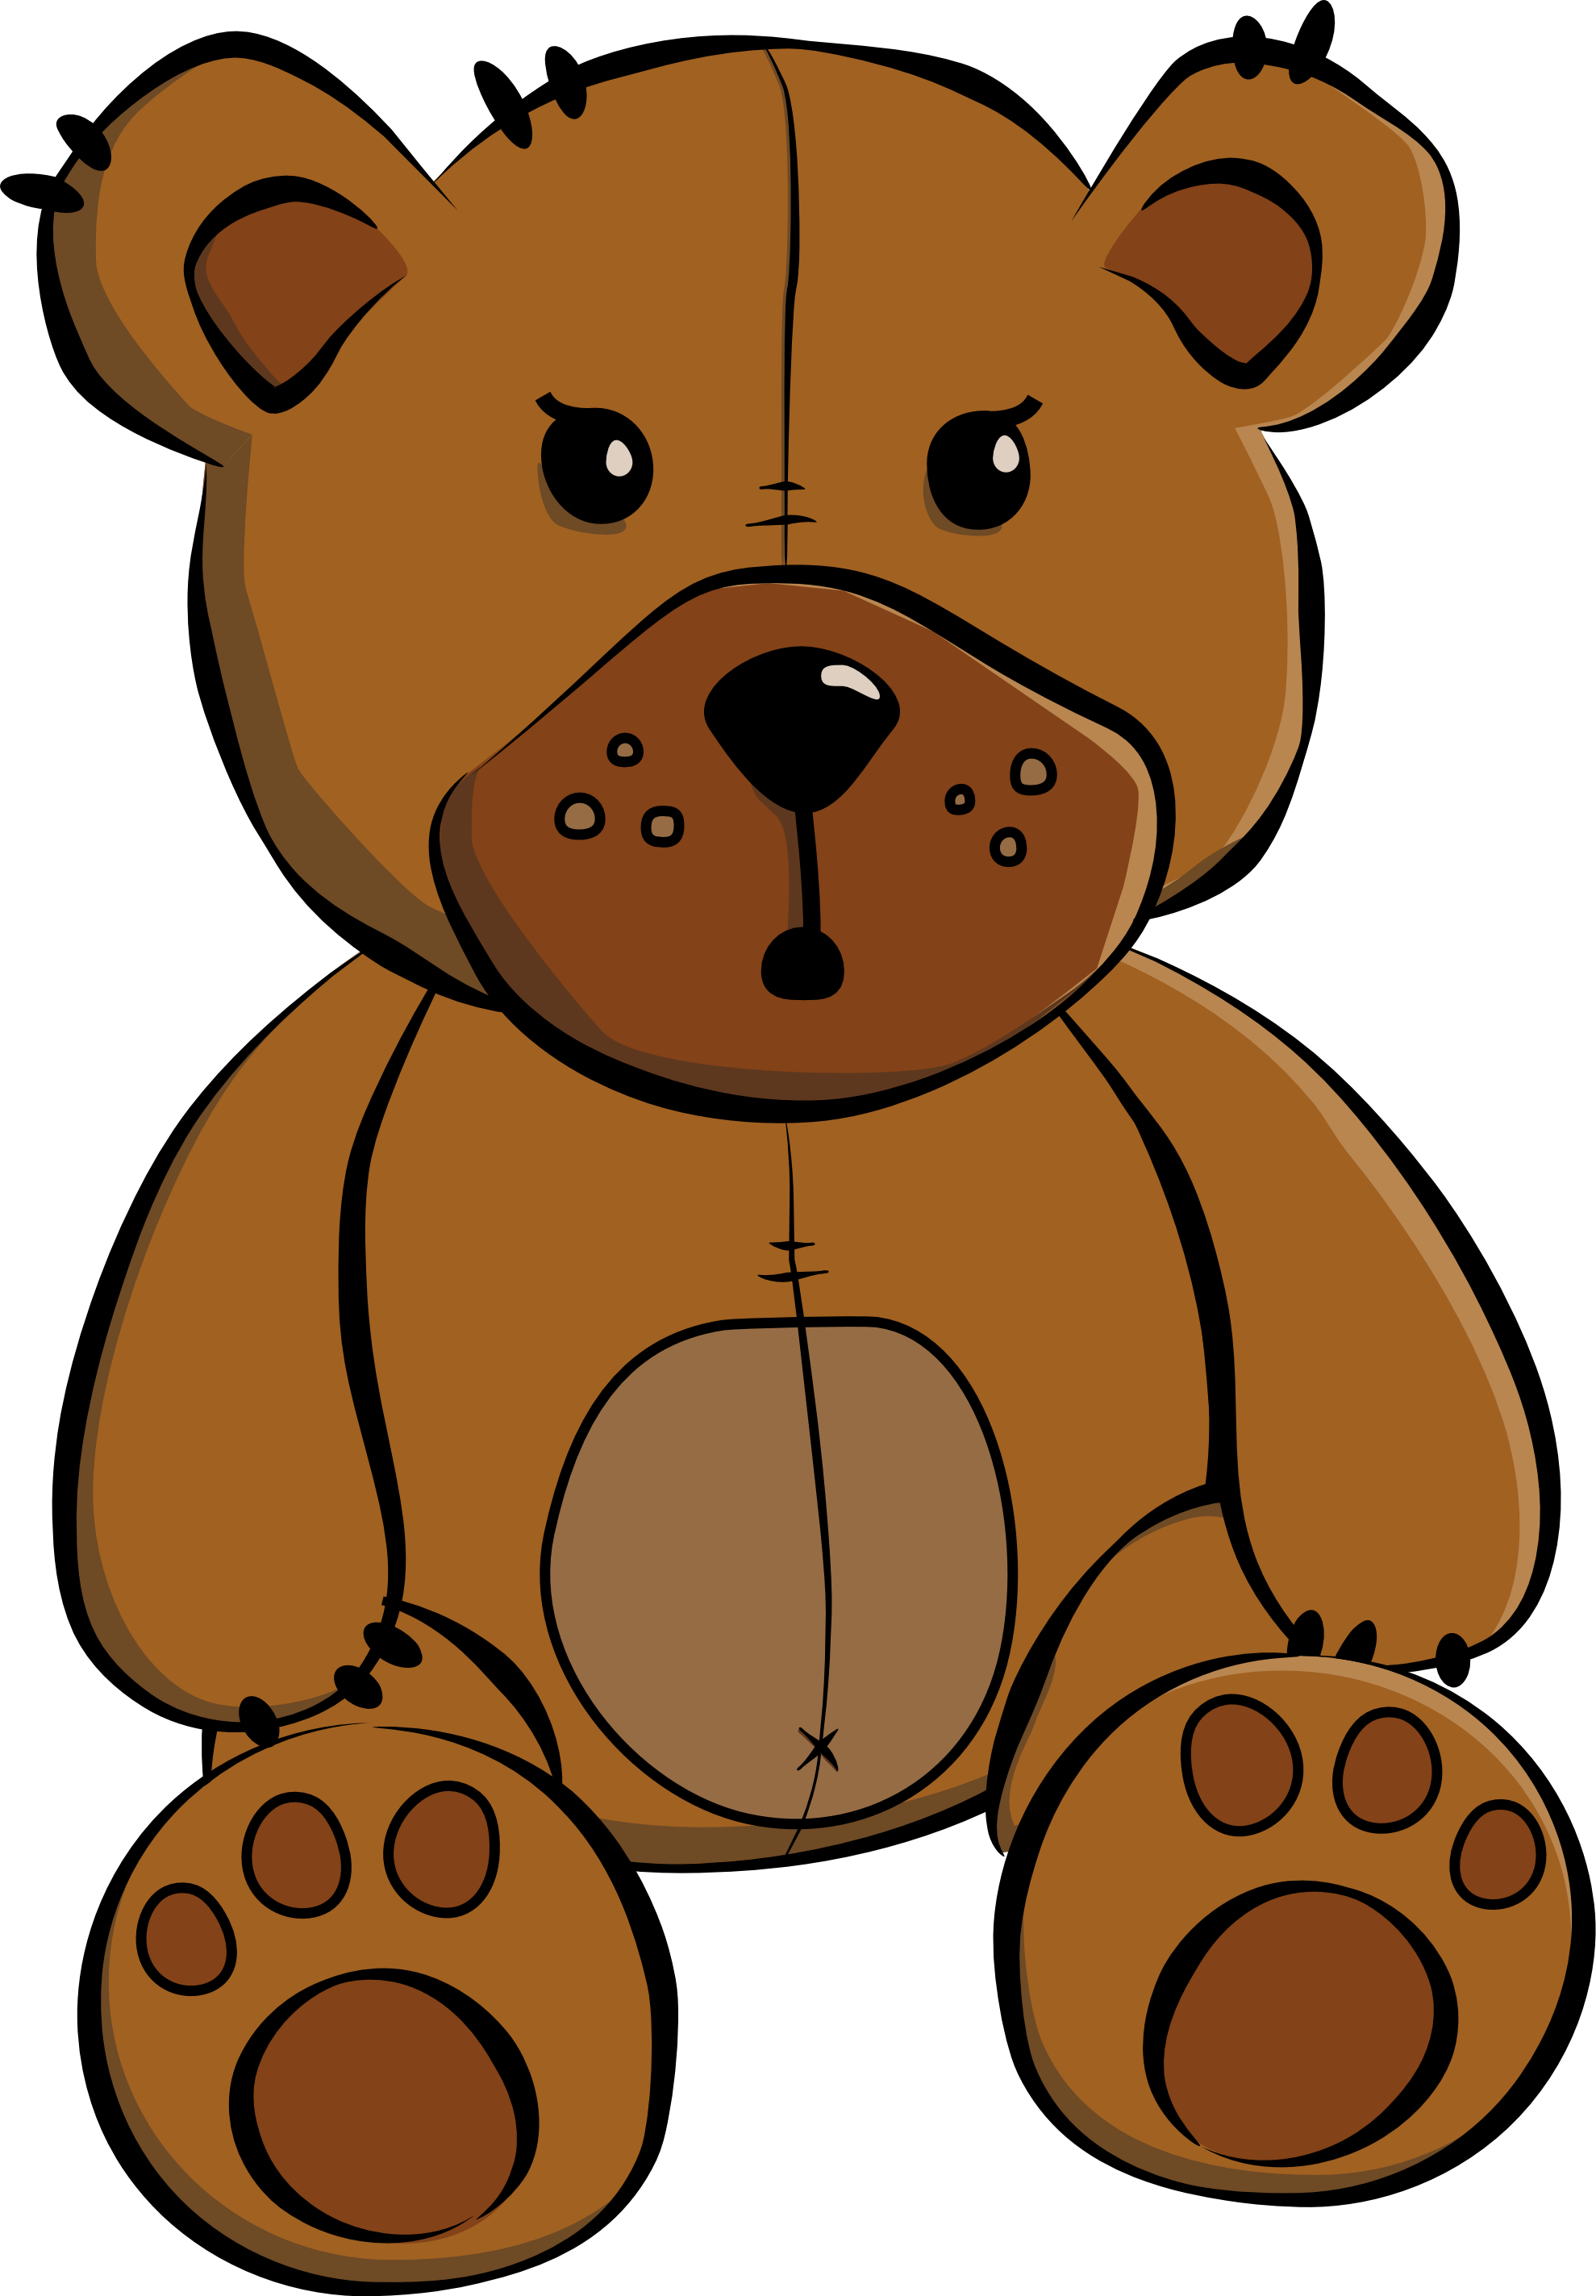 Cute Cartoon Teddy Bears - Cliparts.co